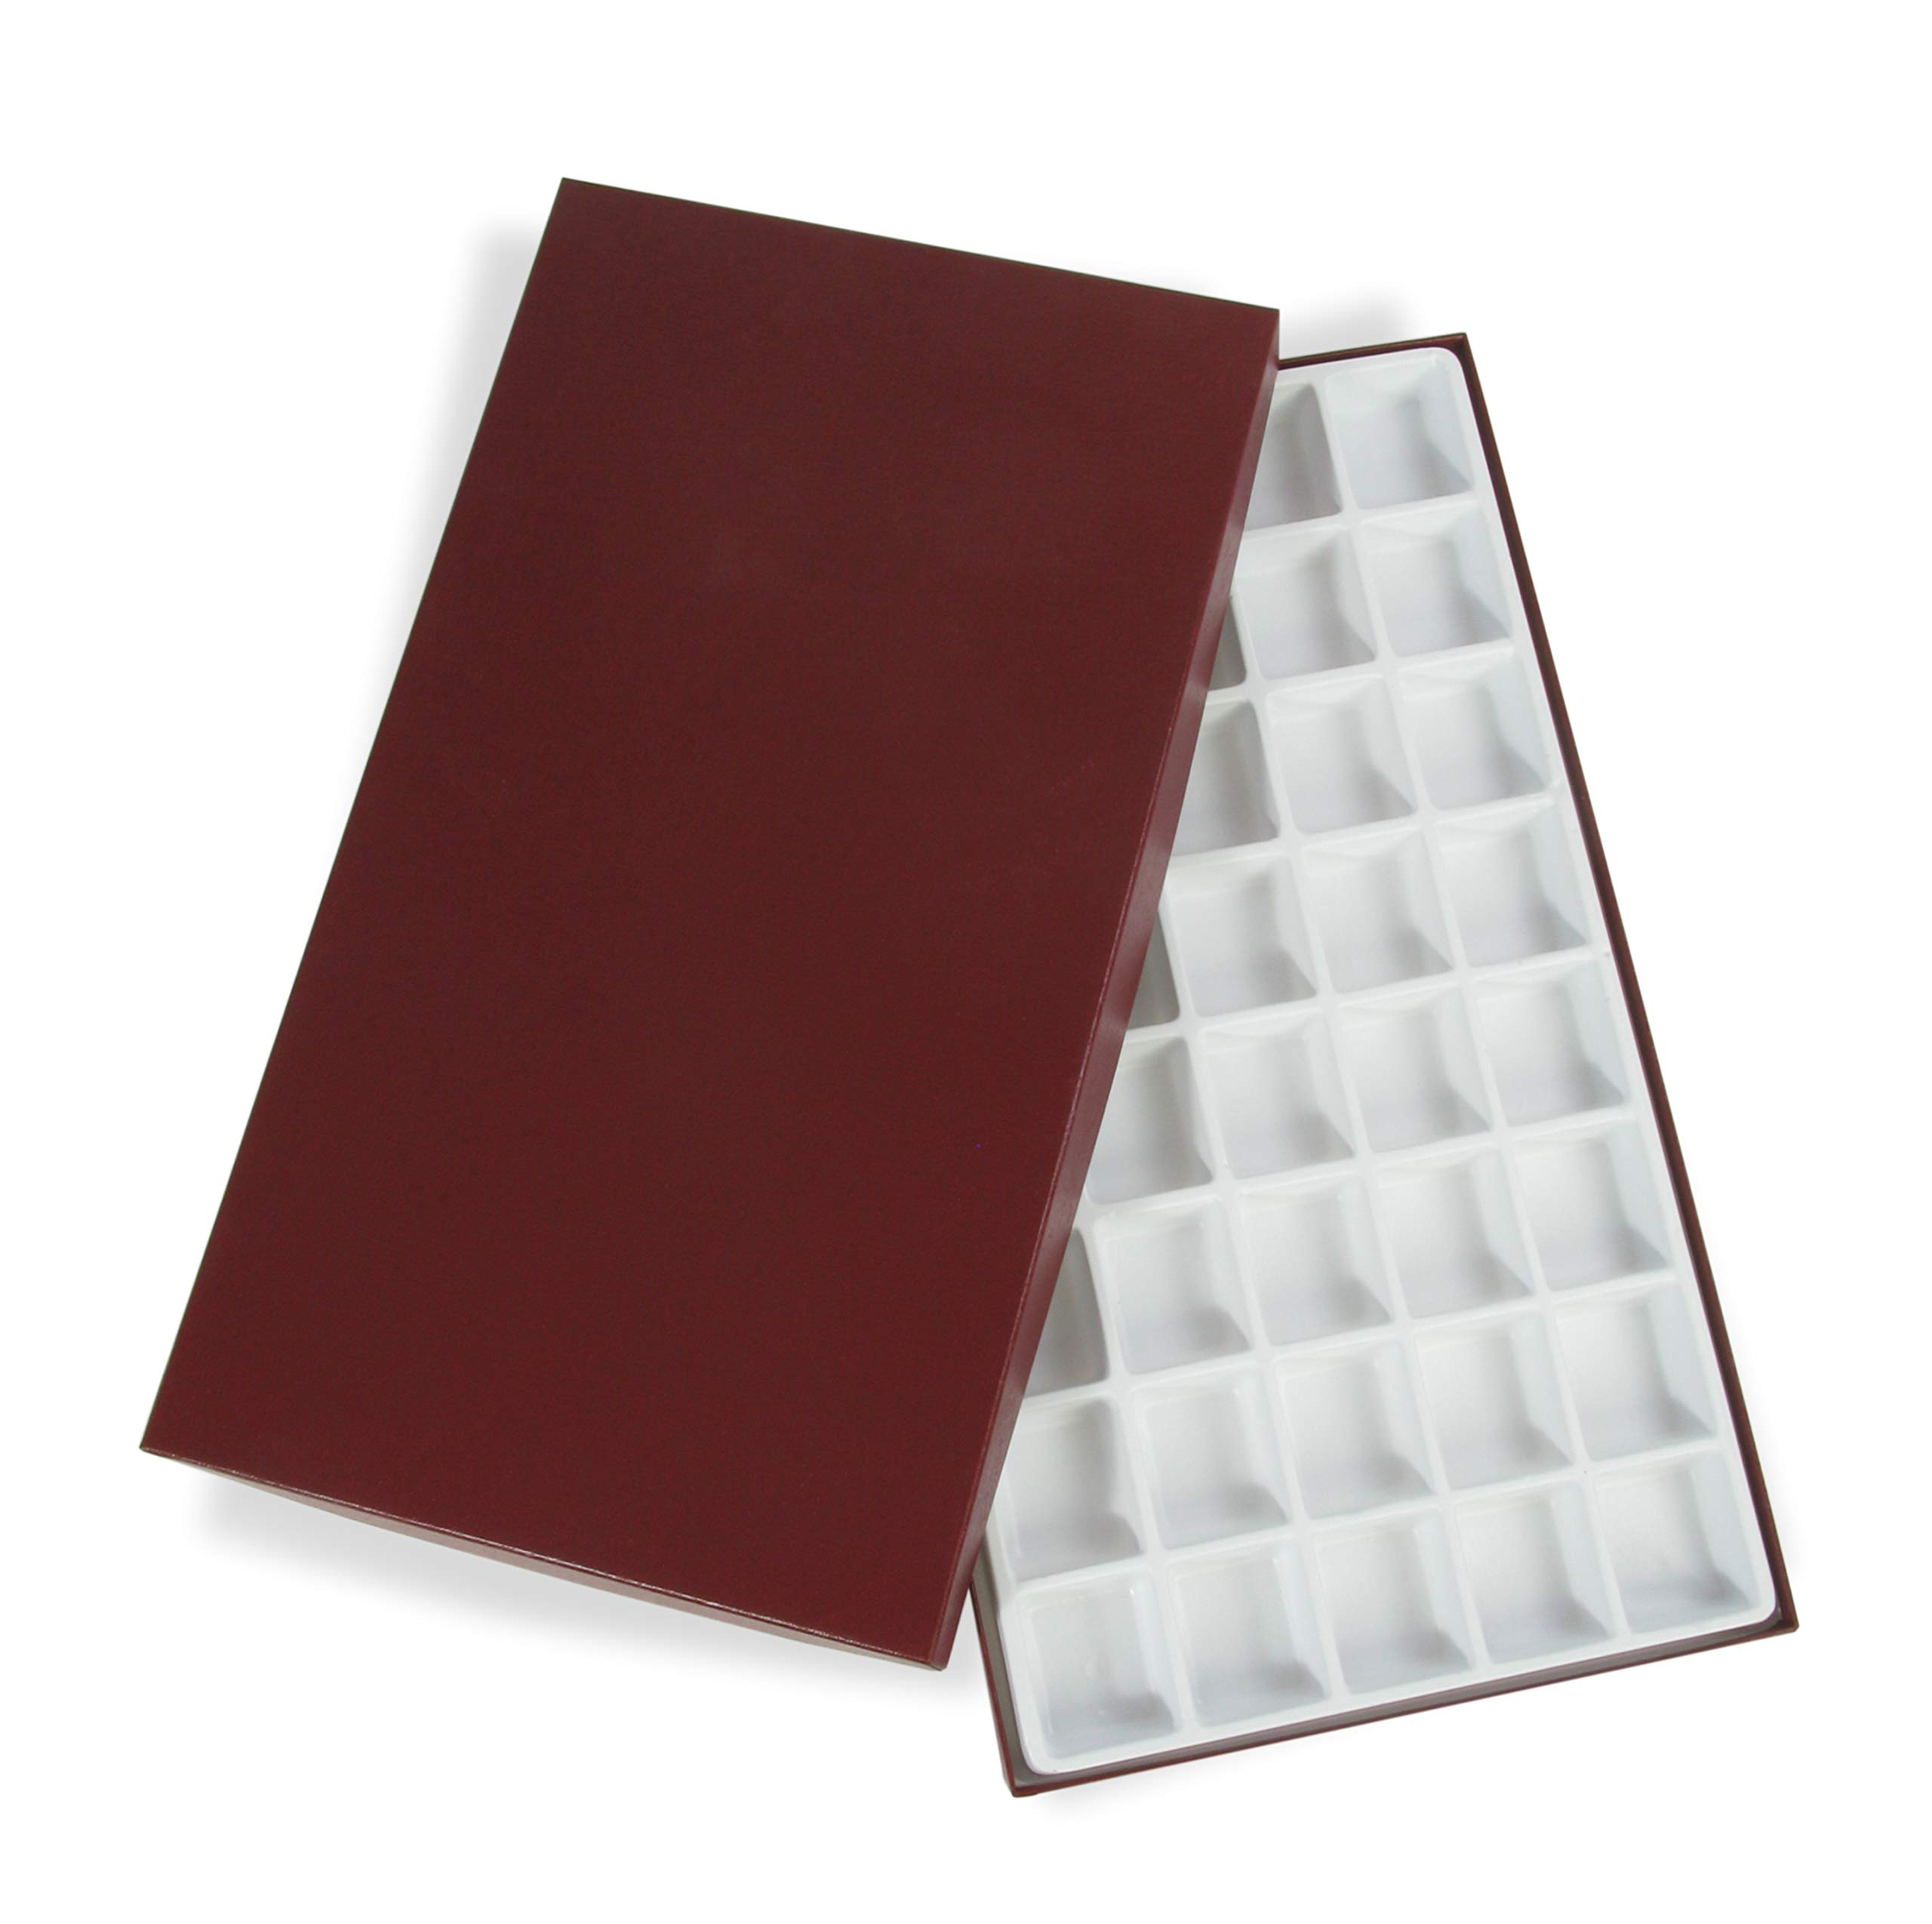 American Educational Polystyrene 40 Cell Storage Box with Tray for Rock and Mineral Specimens